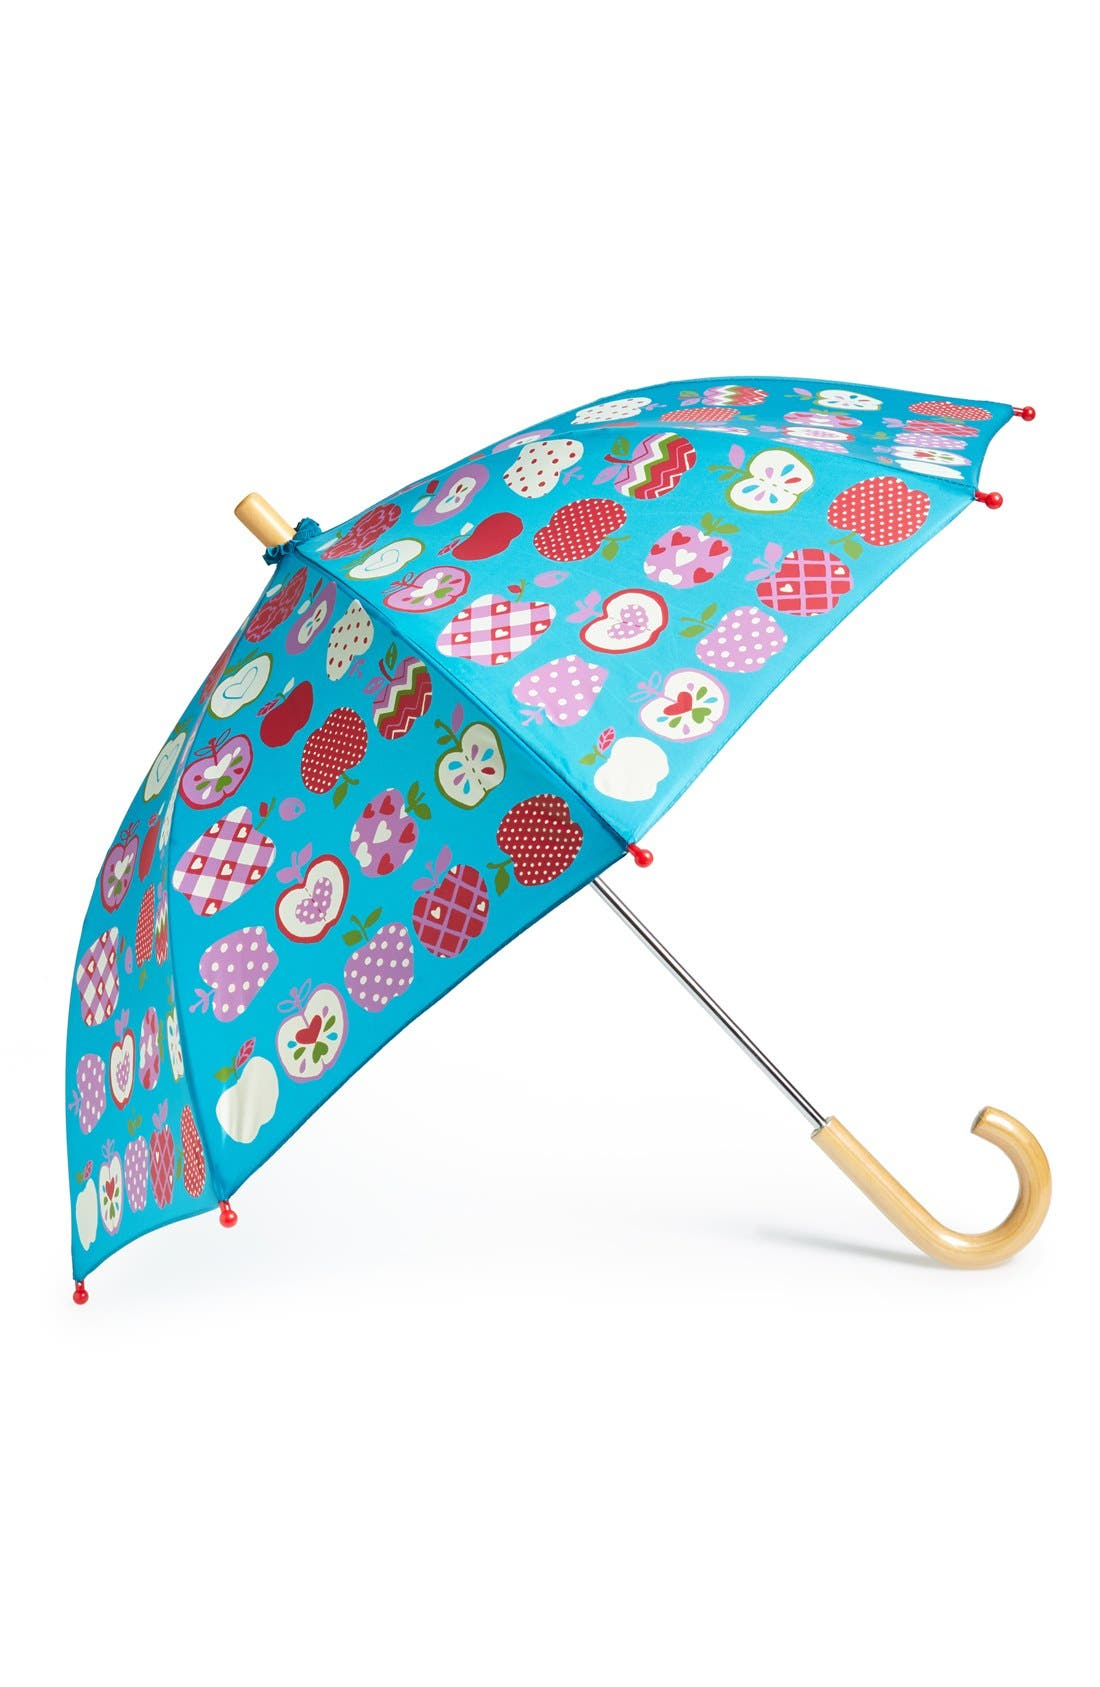 photo about Umbrella Pattern Printable Free called Hatley Orchard Apple Print Umbrella Nordstrom